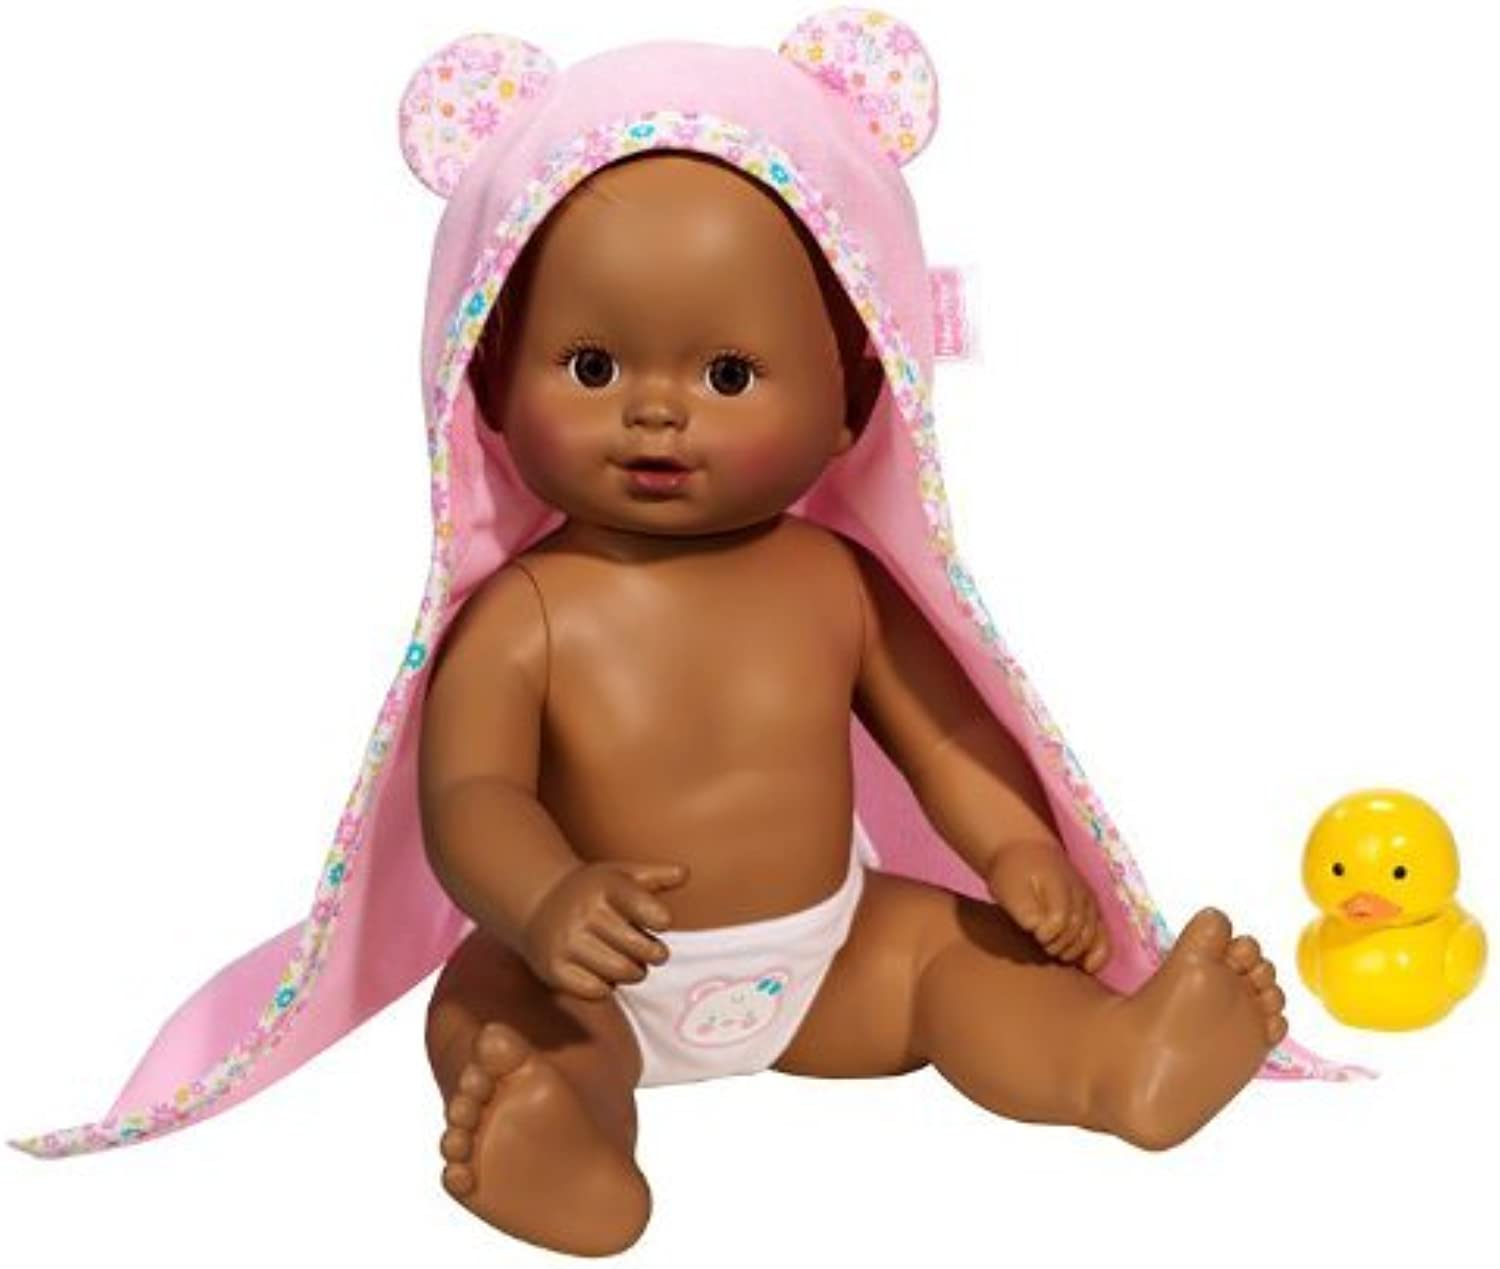 60% de descuento Little Mommy Mommy Mommy Baby's Big Day African-American Doll by Little Mommy  orden ahora disfrutar de gran descuento